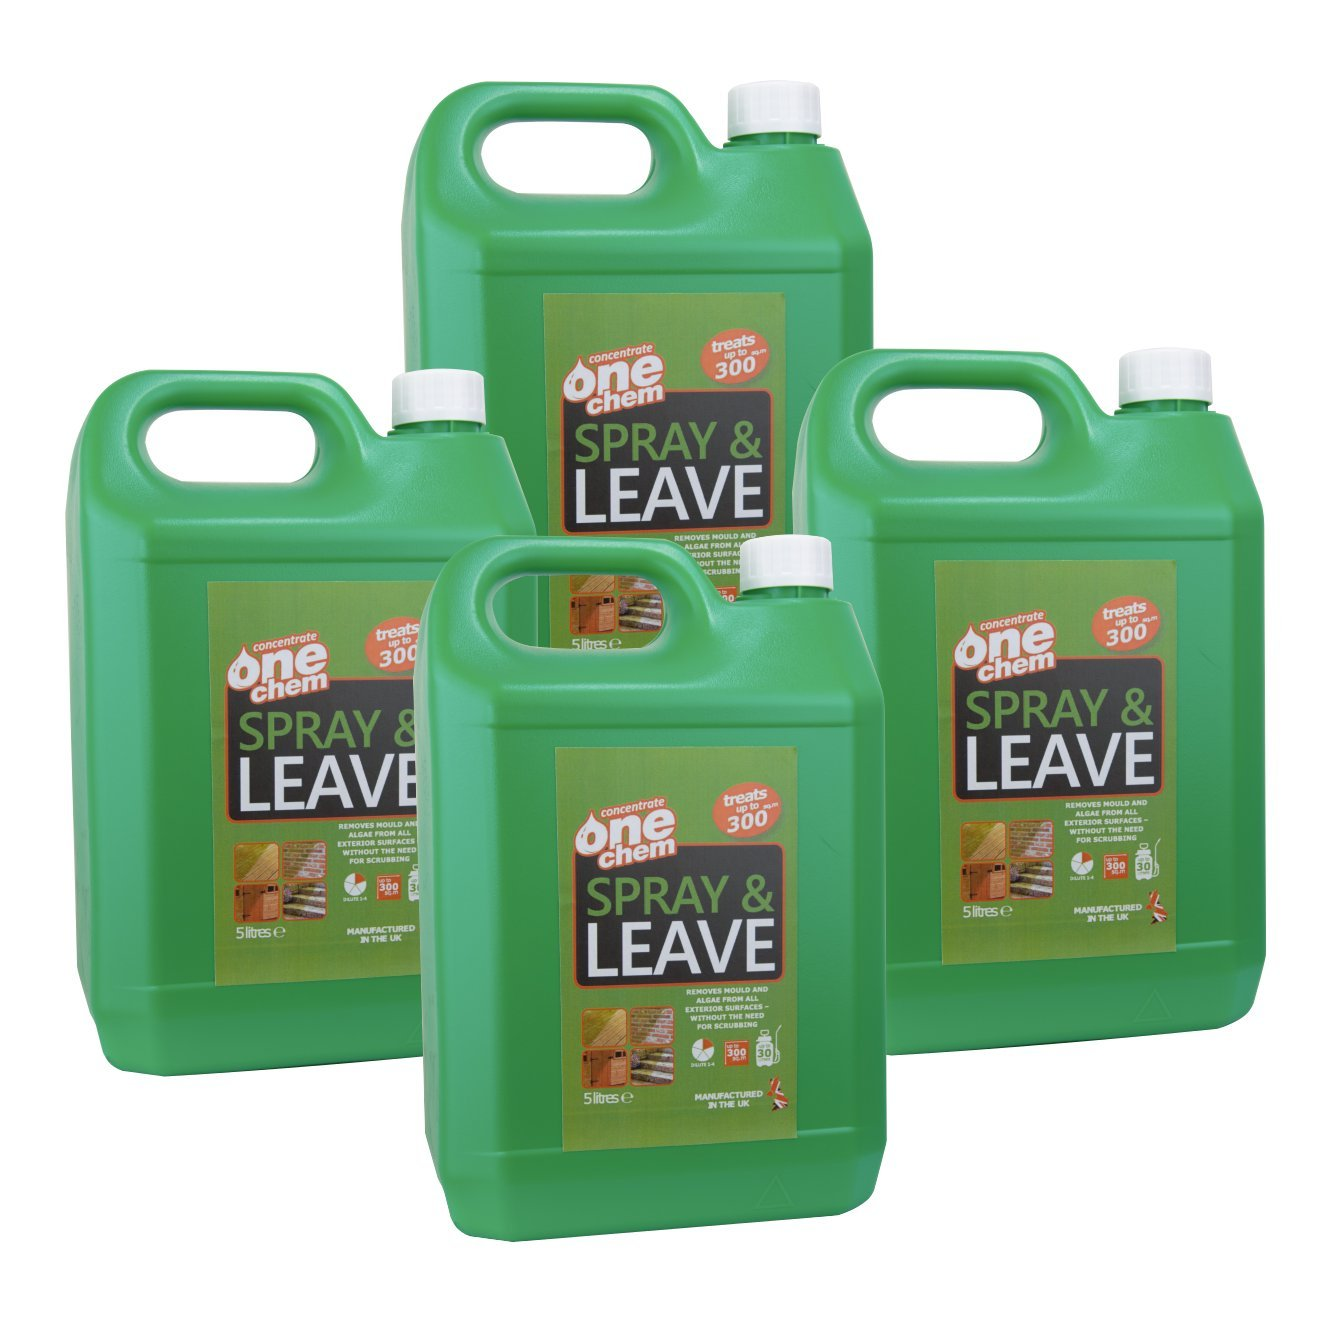 One Chem OneChem001 Spray and Leave Concentrate Algae/Moss/Mold Killer, Clear, 20 Litre